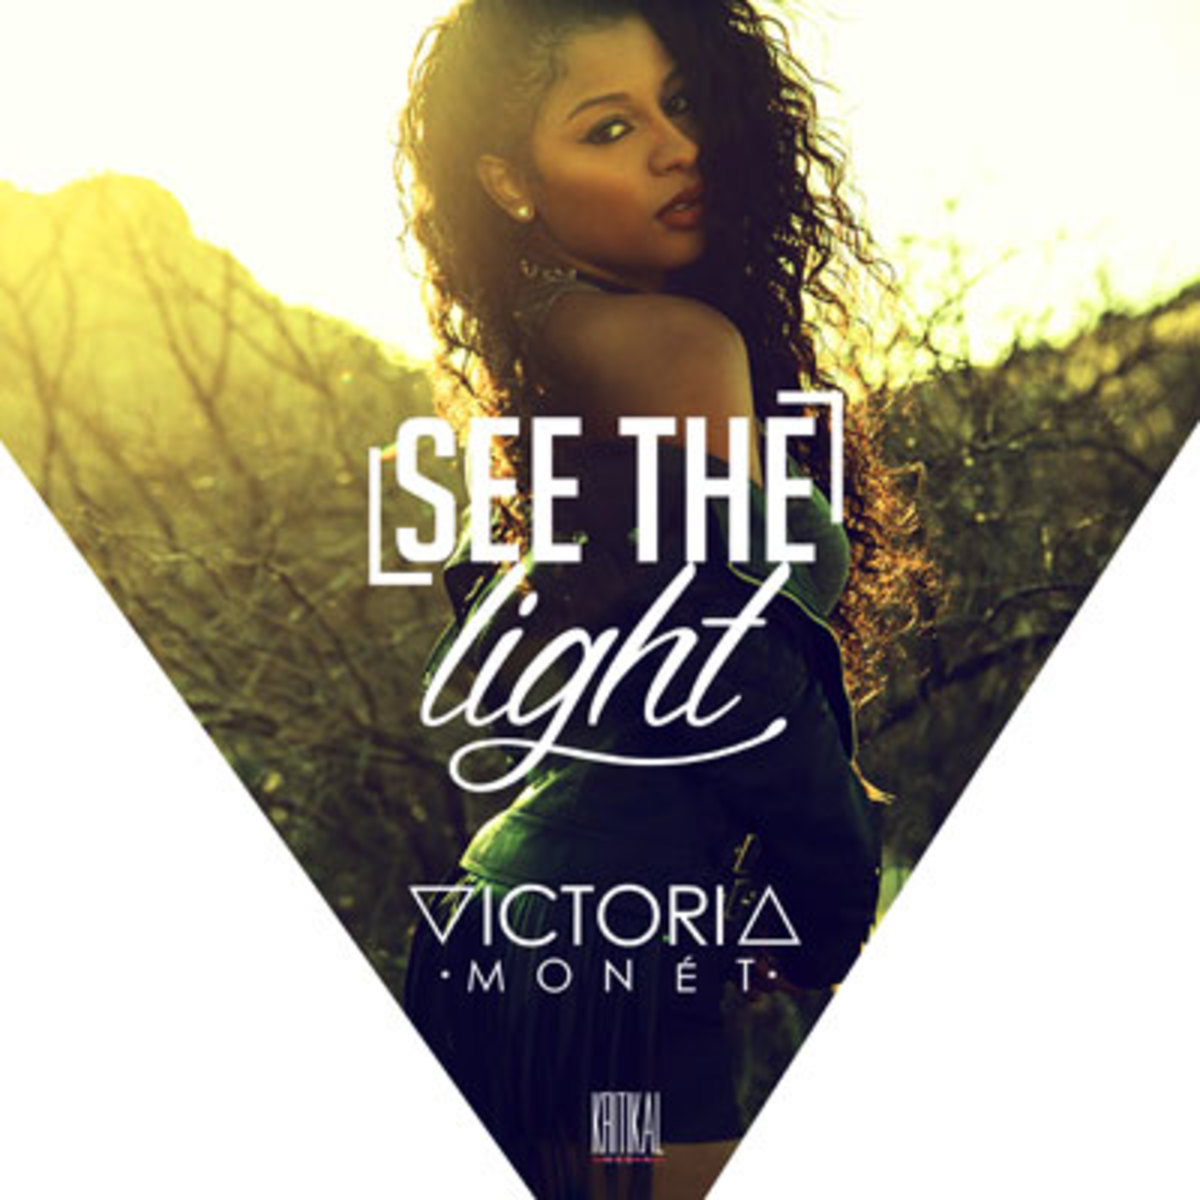 victoria-monet-see-the-light.jpg